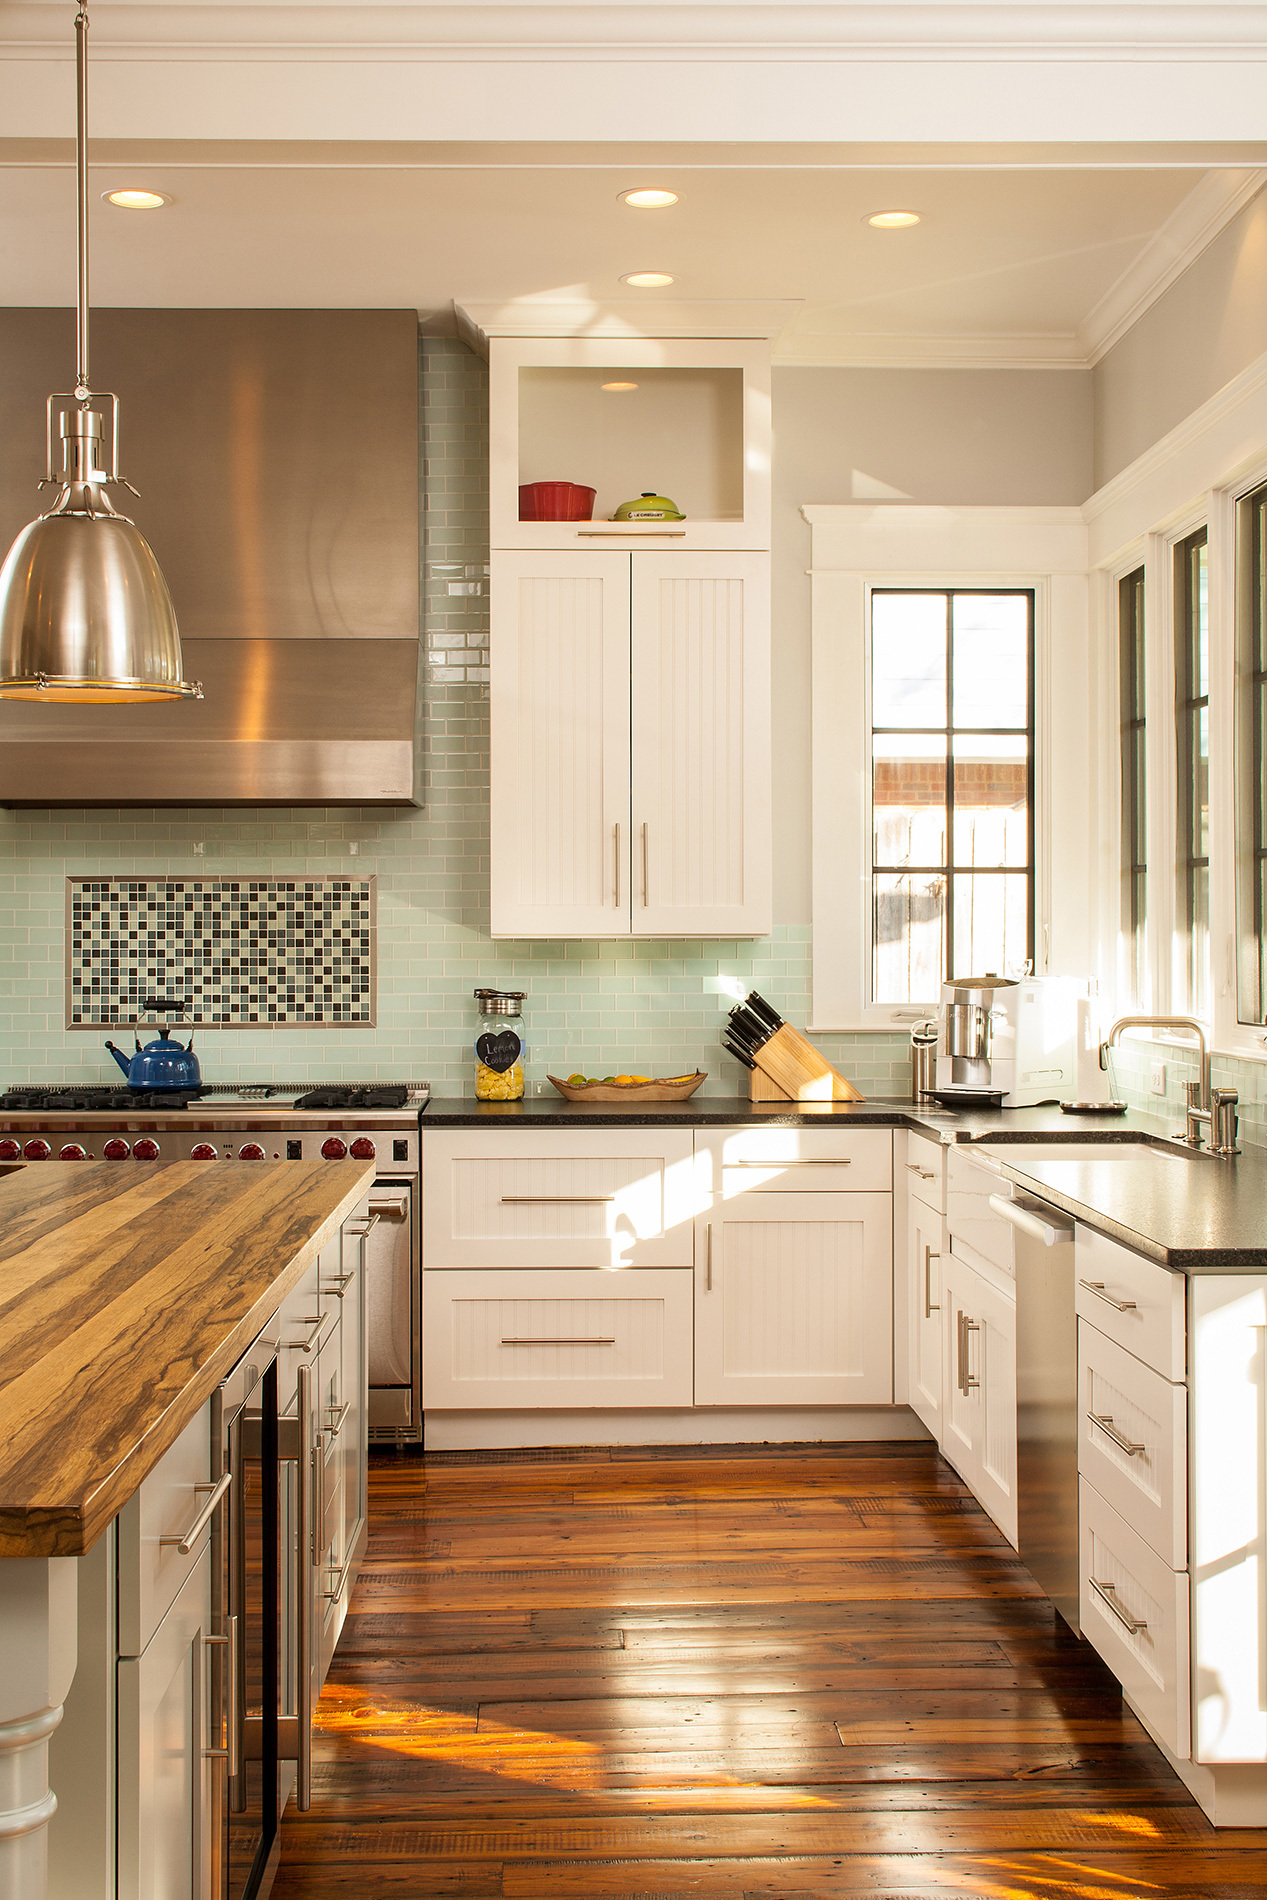 Custom kitchen with stainless steel appliances, warm wood top island and geometric backsplash